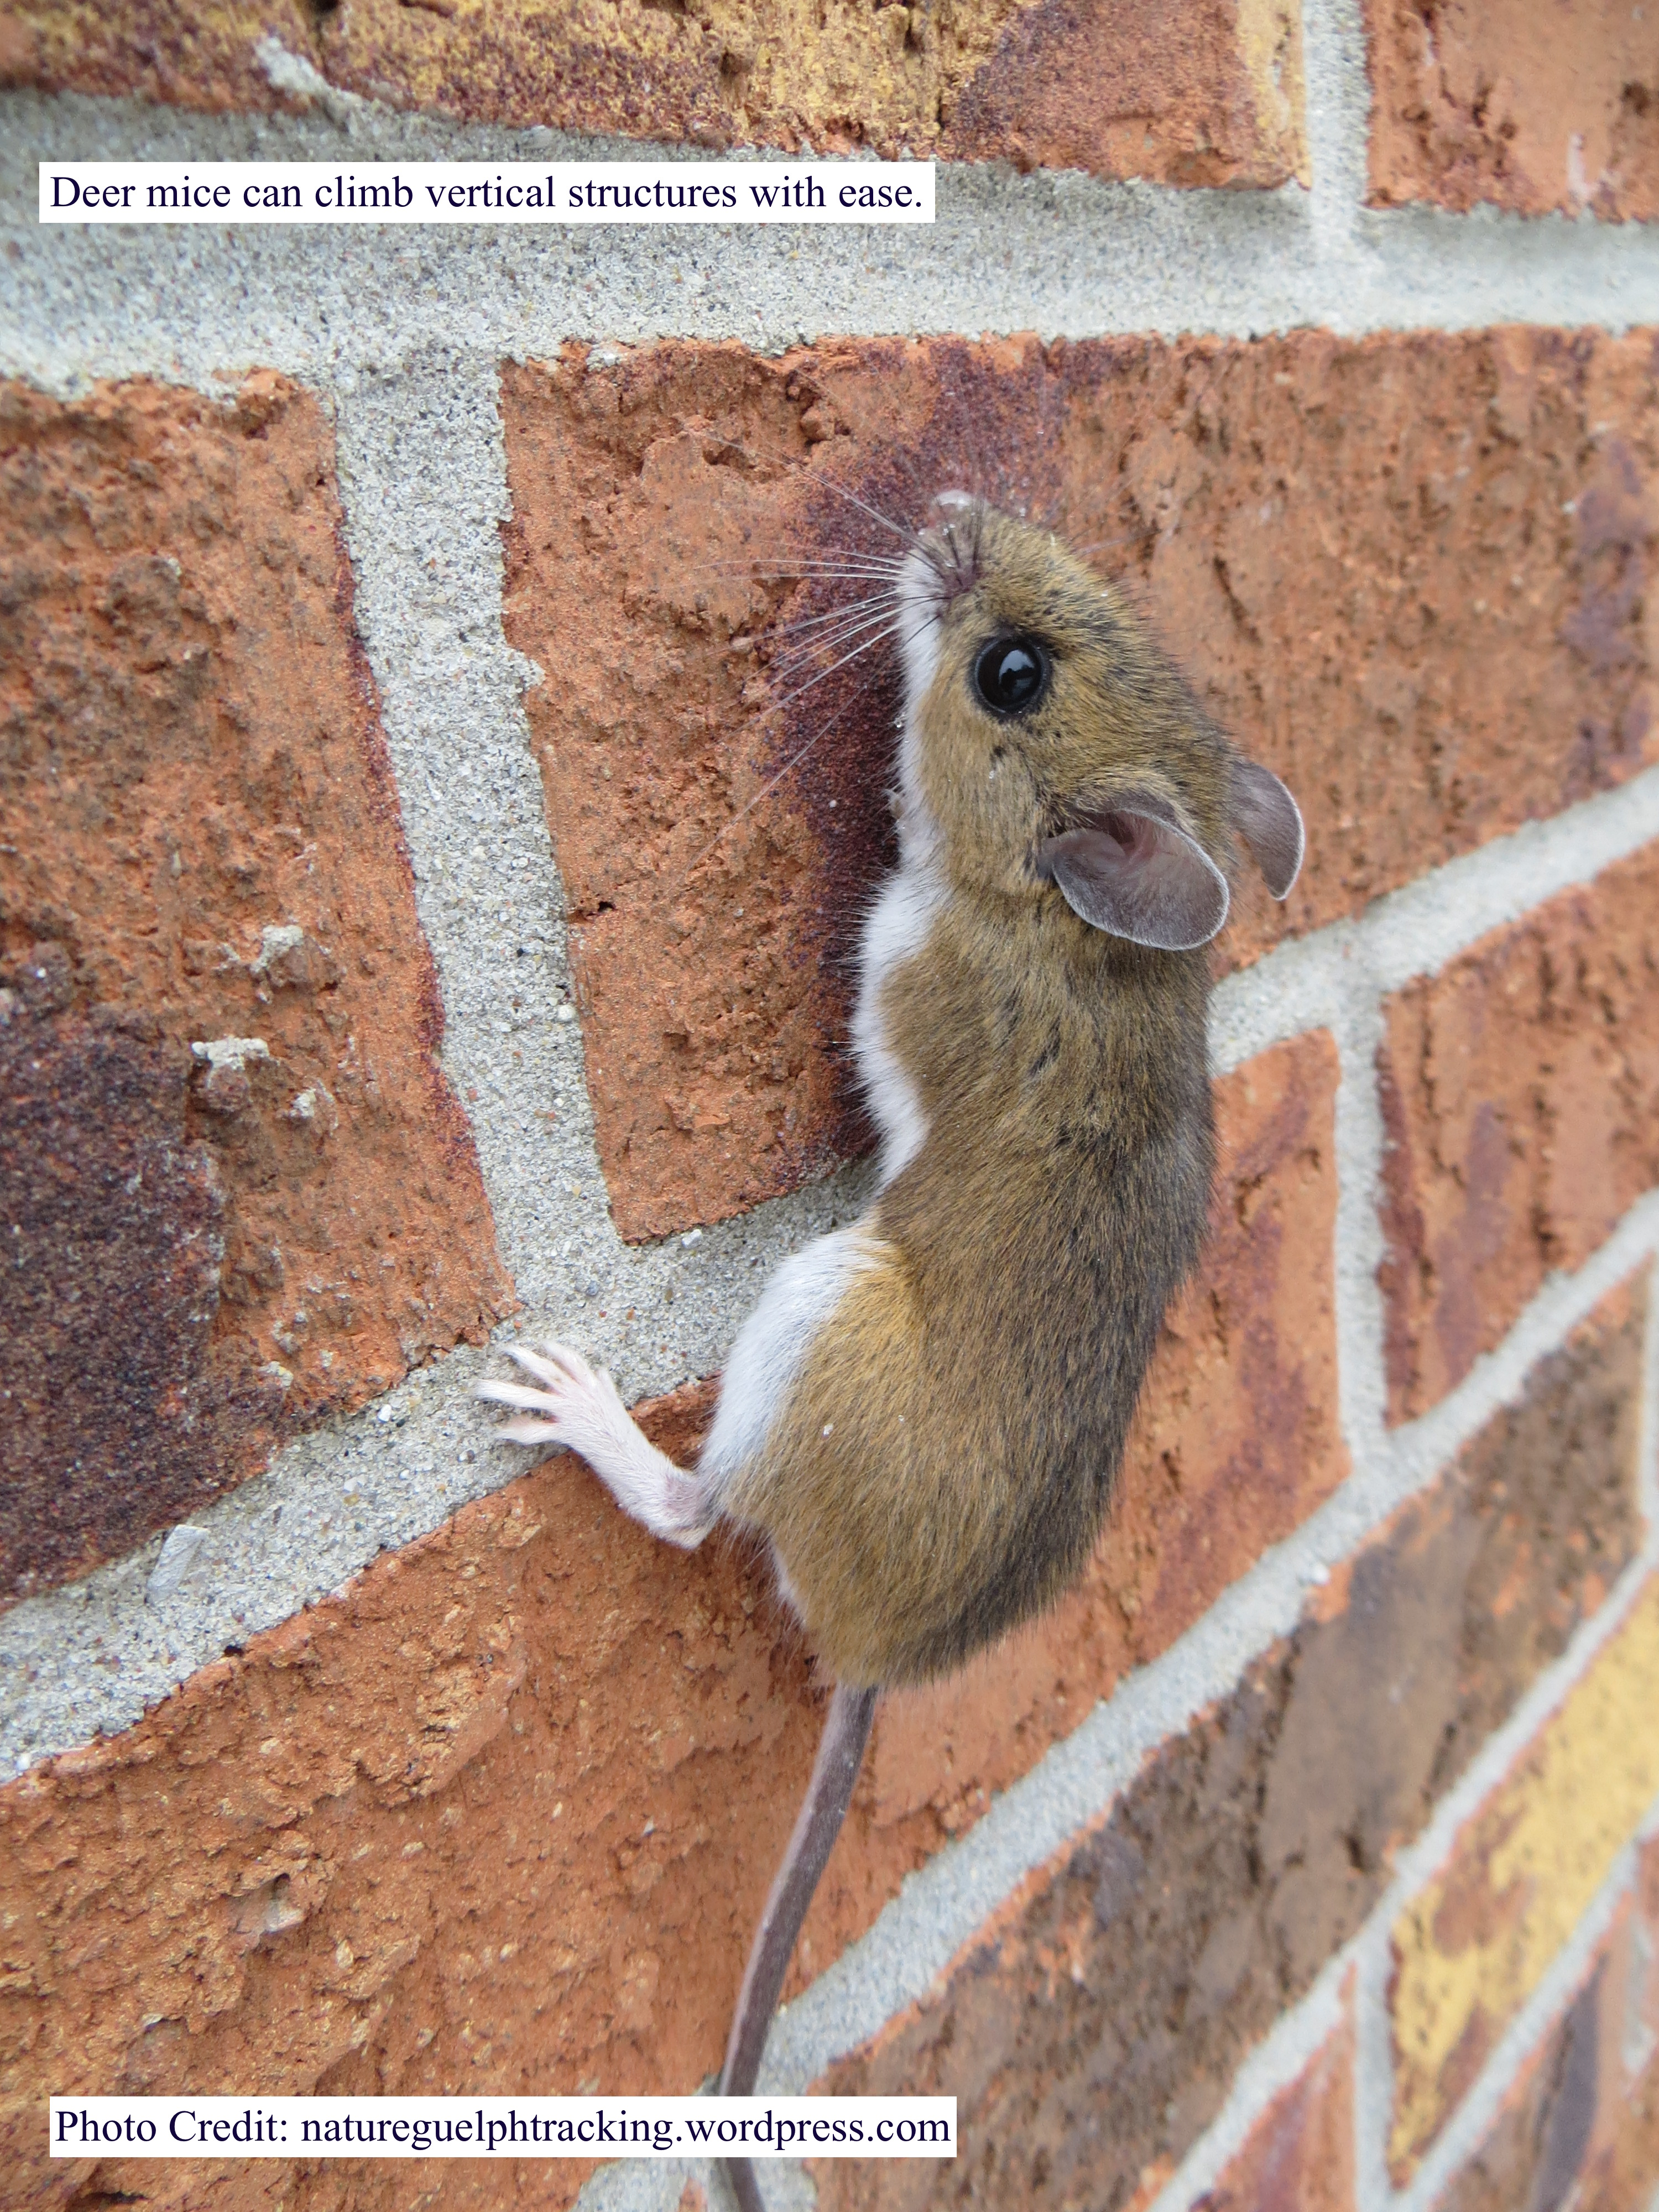 Deer mouse climbing brick wall